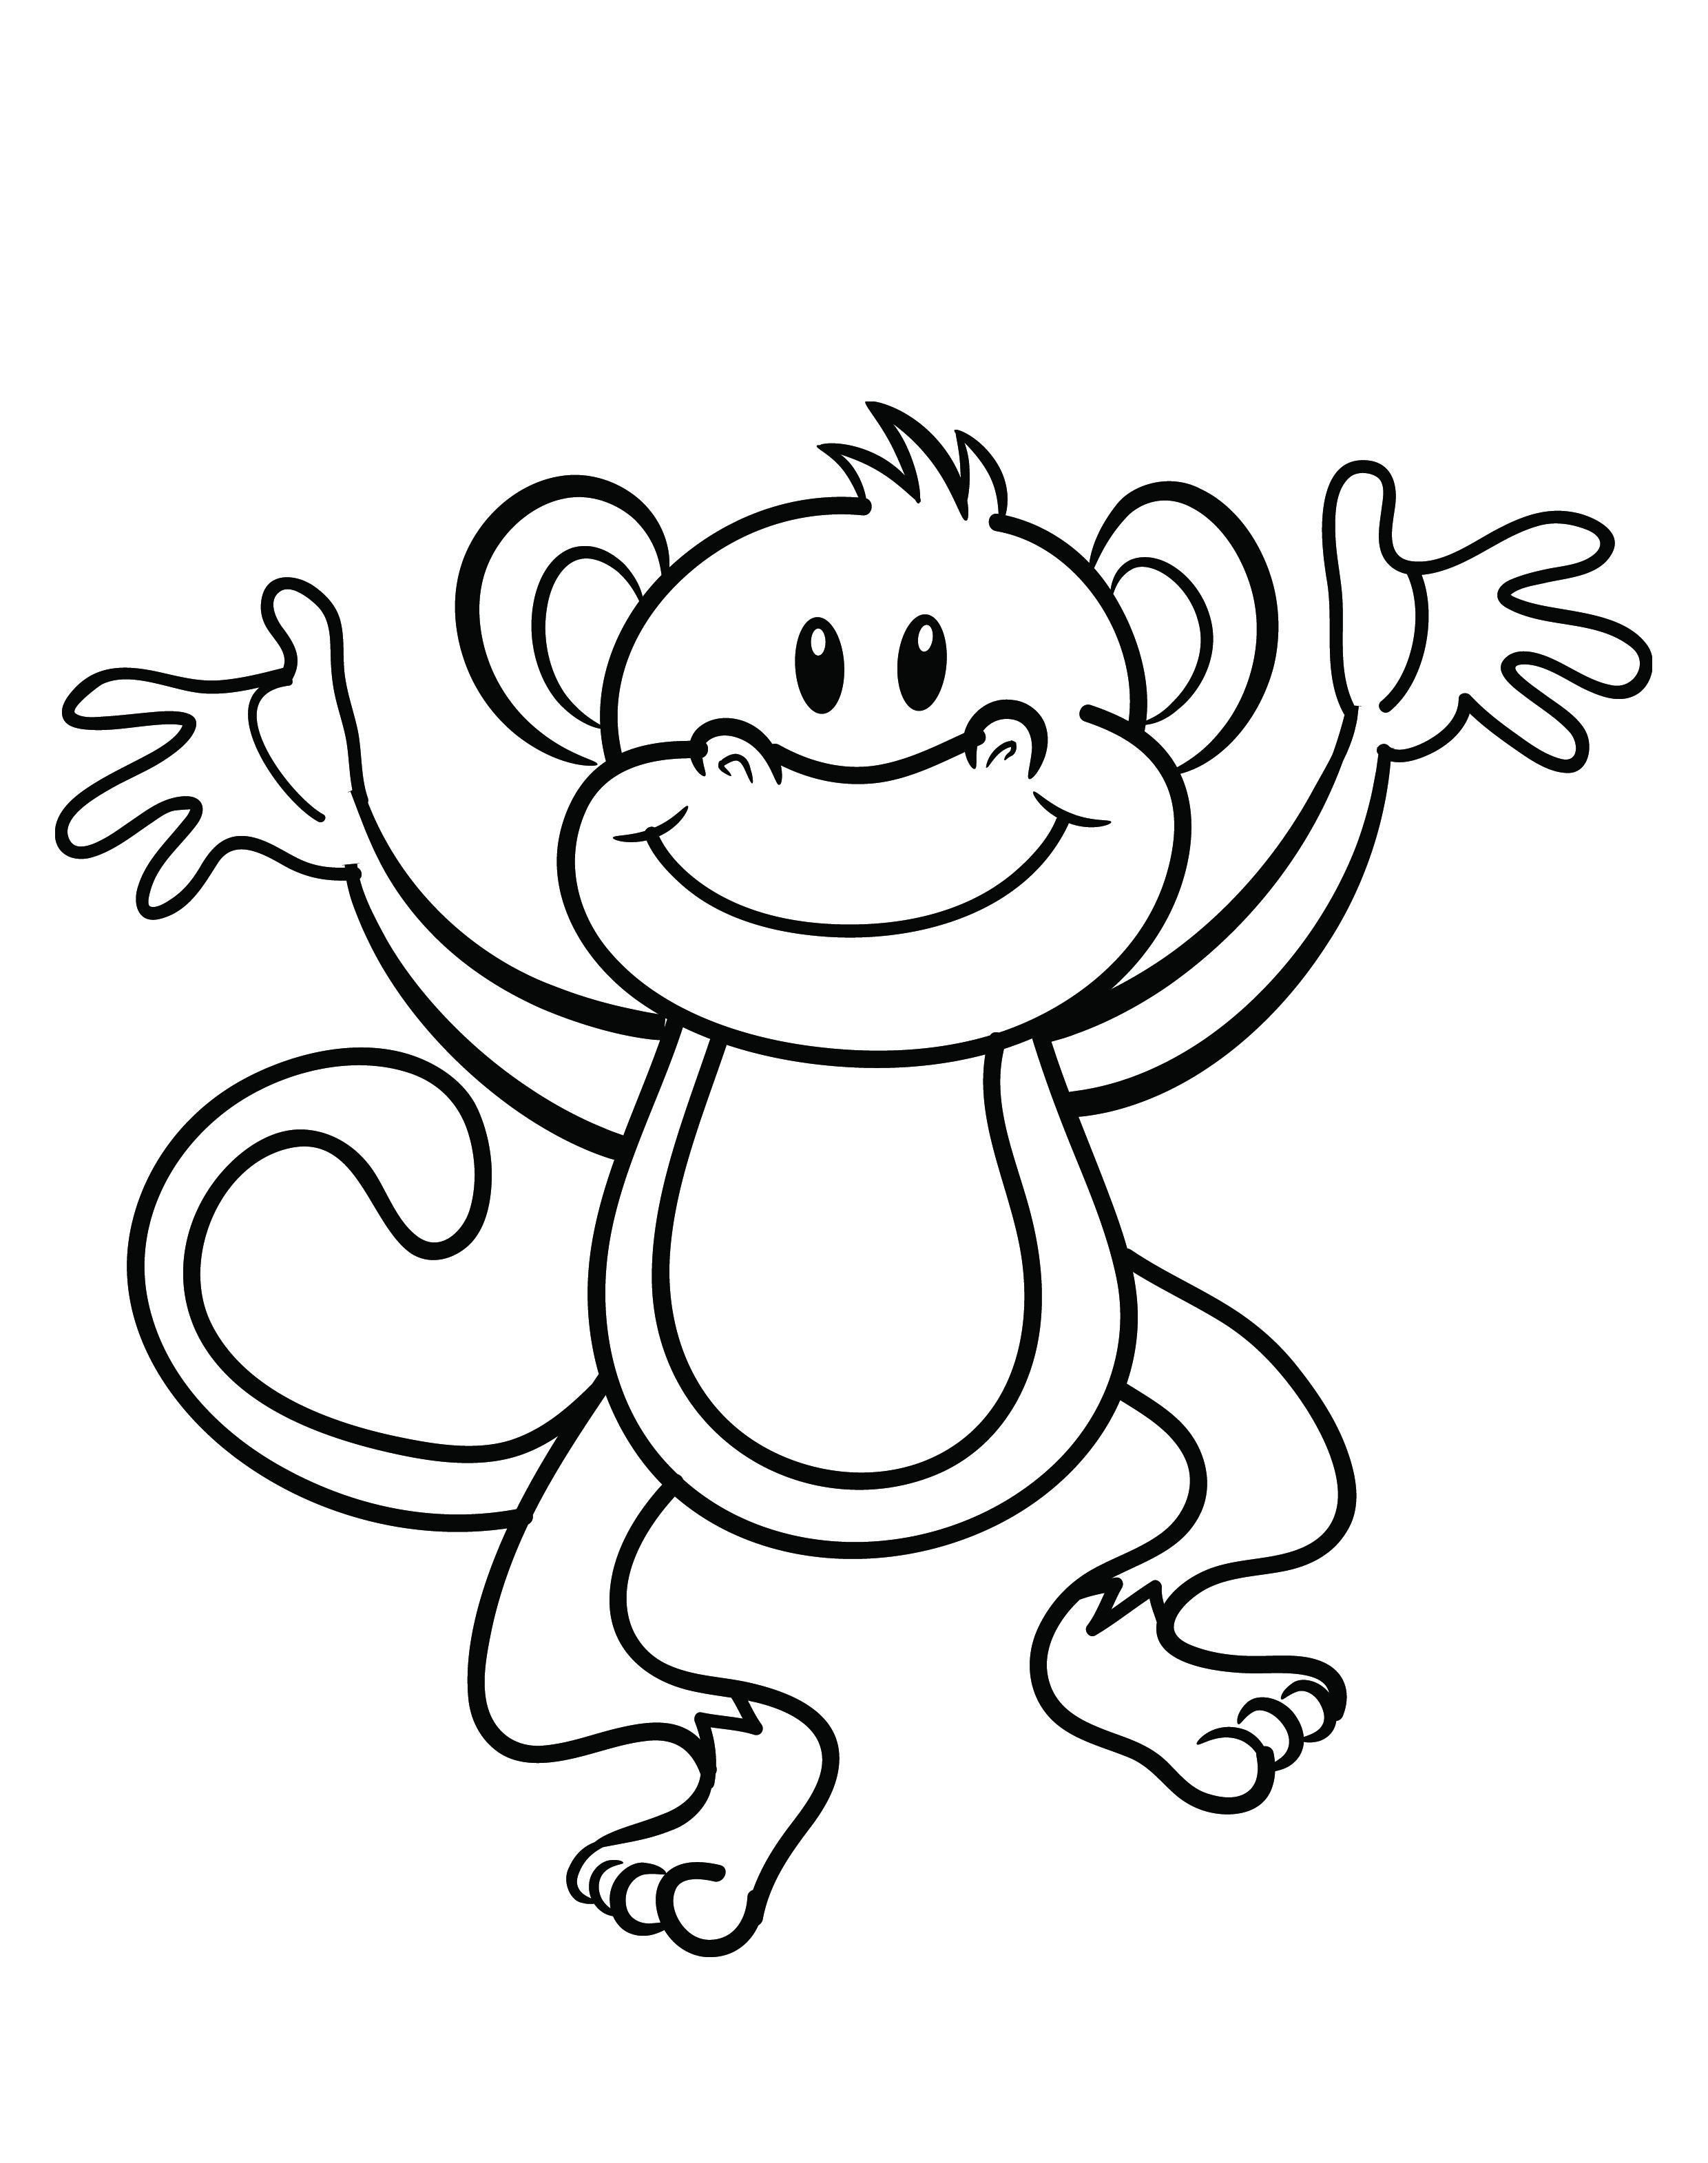 Free Printable Monkey Coloring Page With Images Monkey